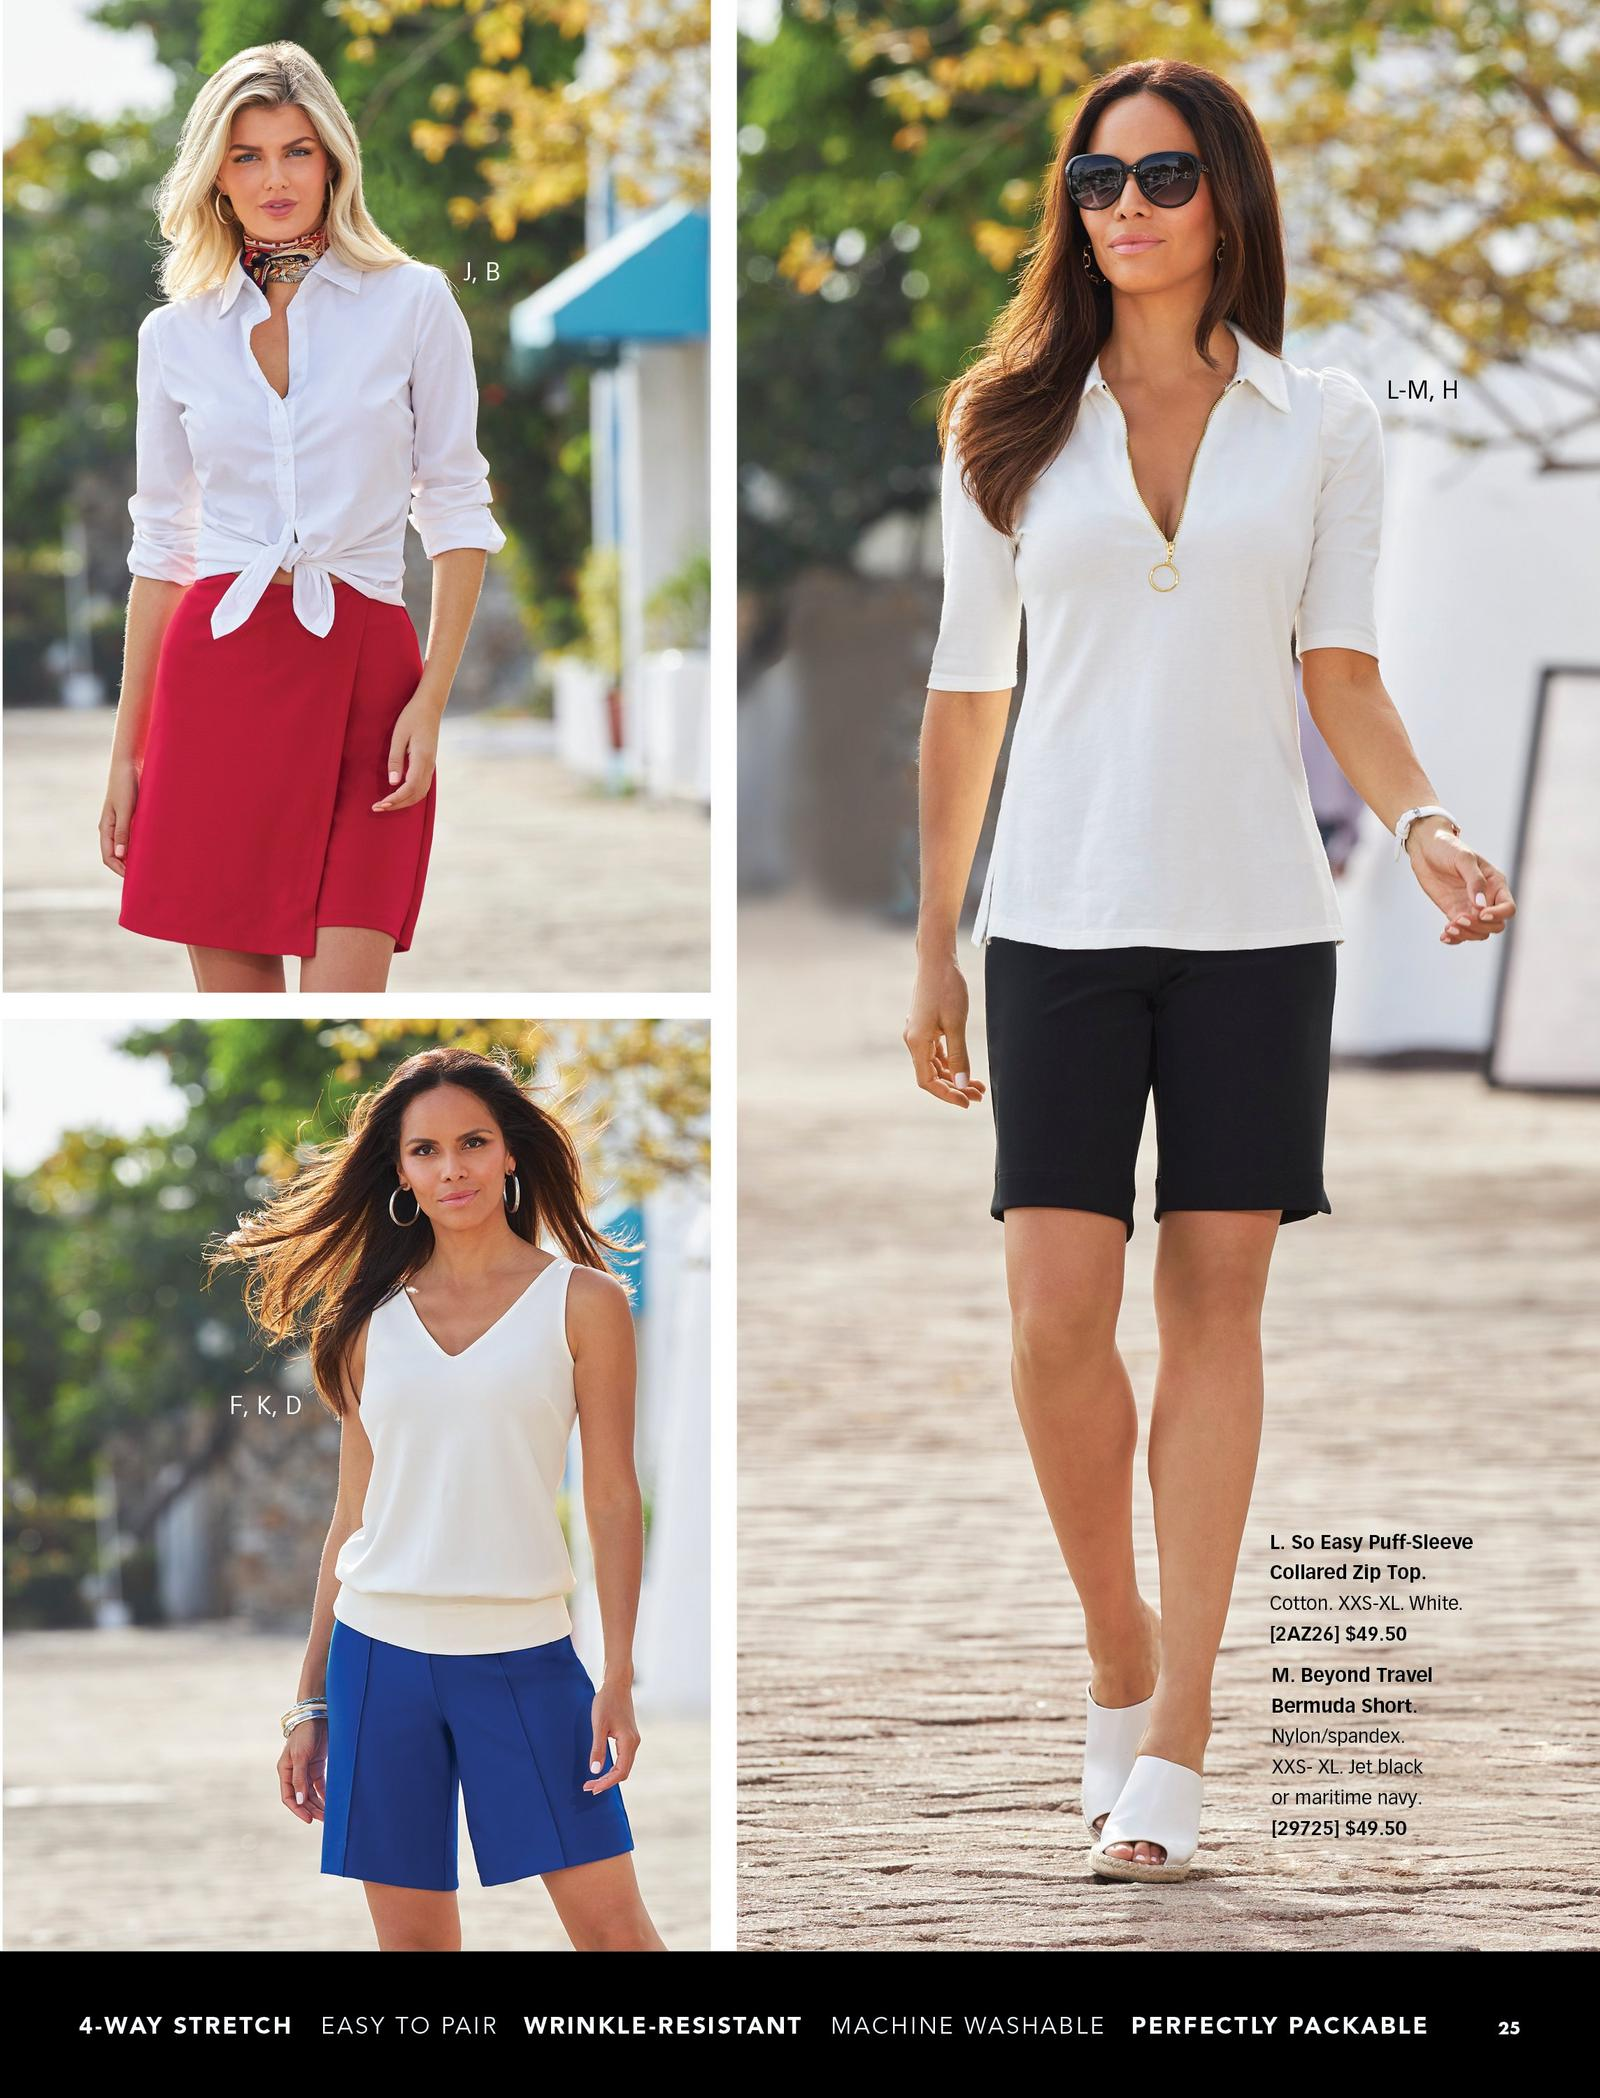 top left model wearing a white button-up top that has been tied, a scarf around her neck, and a red skort. bottom left model wearing a white sleeveless blouson top and blue wide-leg shorts. right model wearing a white collared puff-sleeve zip top, black bermuda shorts, white slide wedges, and sunglasses.